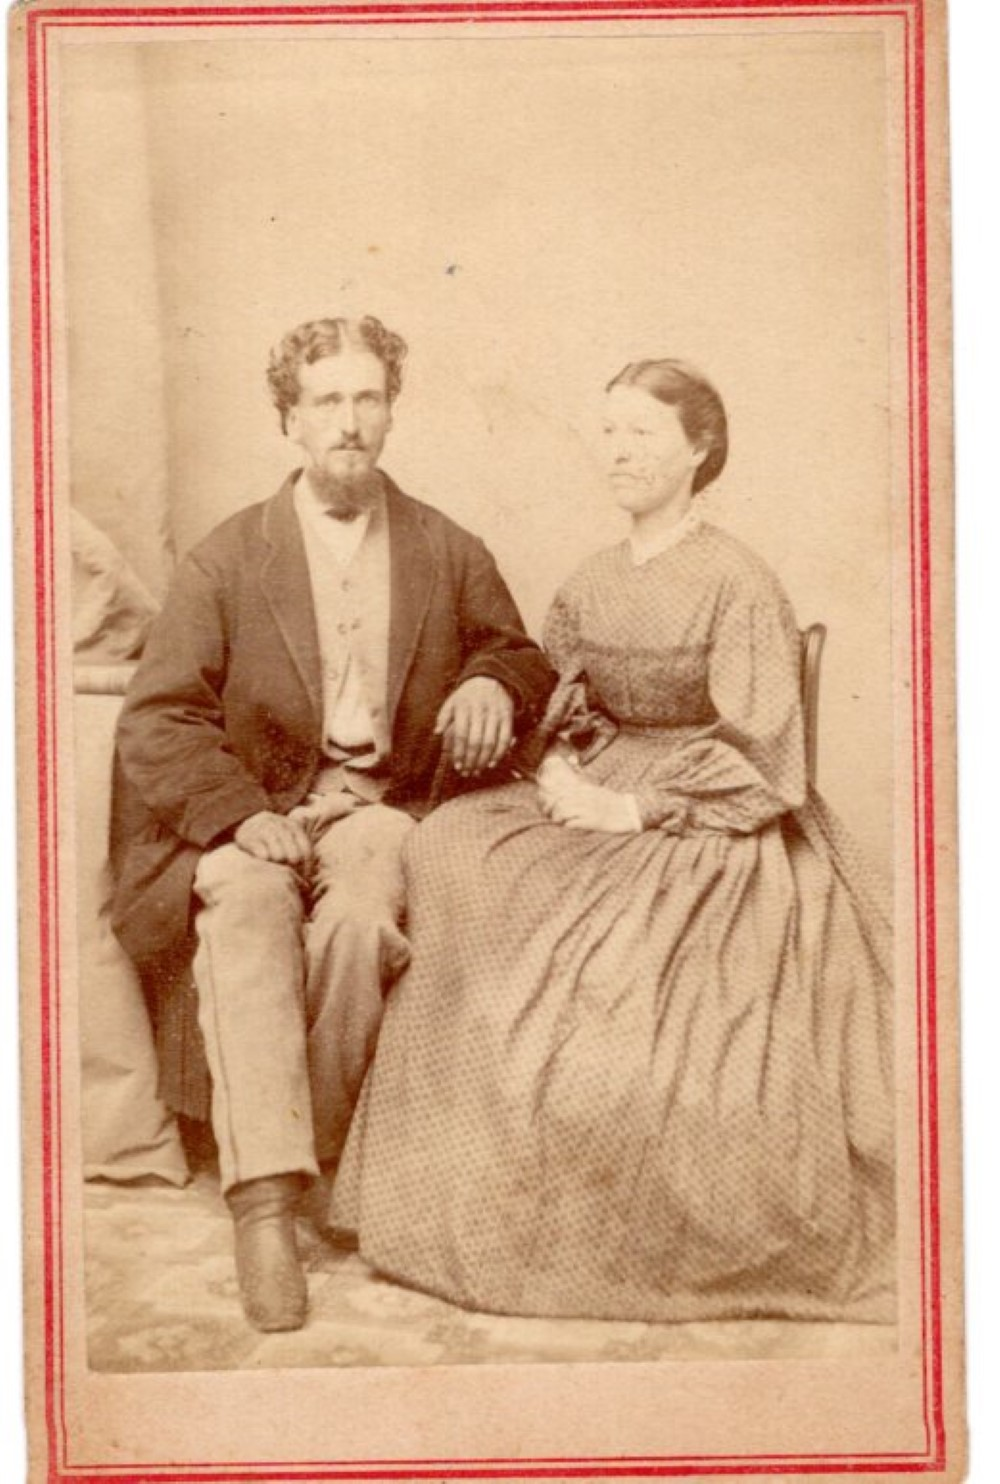 Unidentified Civil War soldier and wife